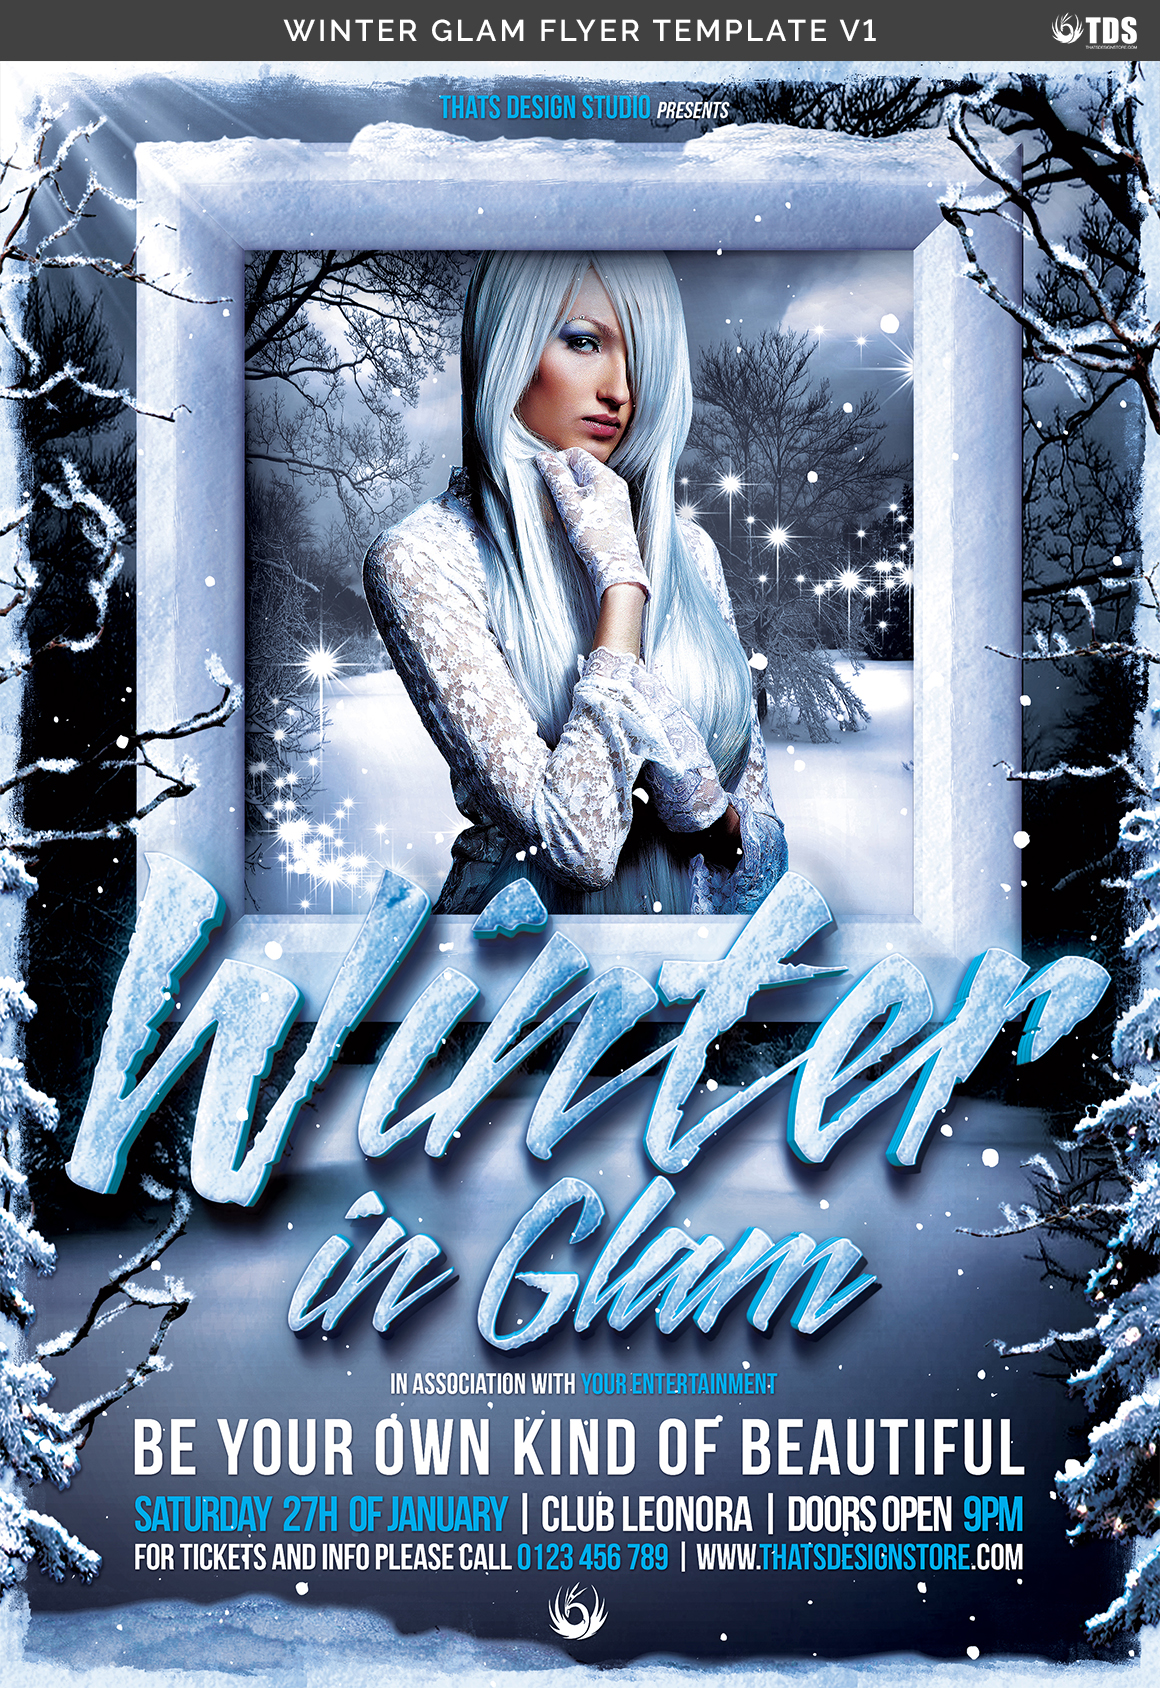 Winter Glam Flyer Template V1 example image 7